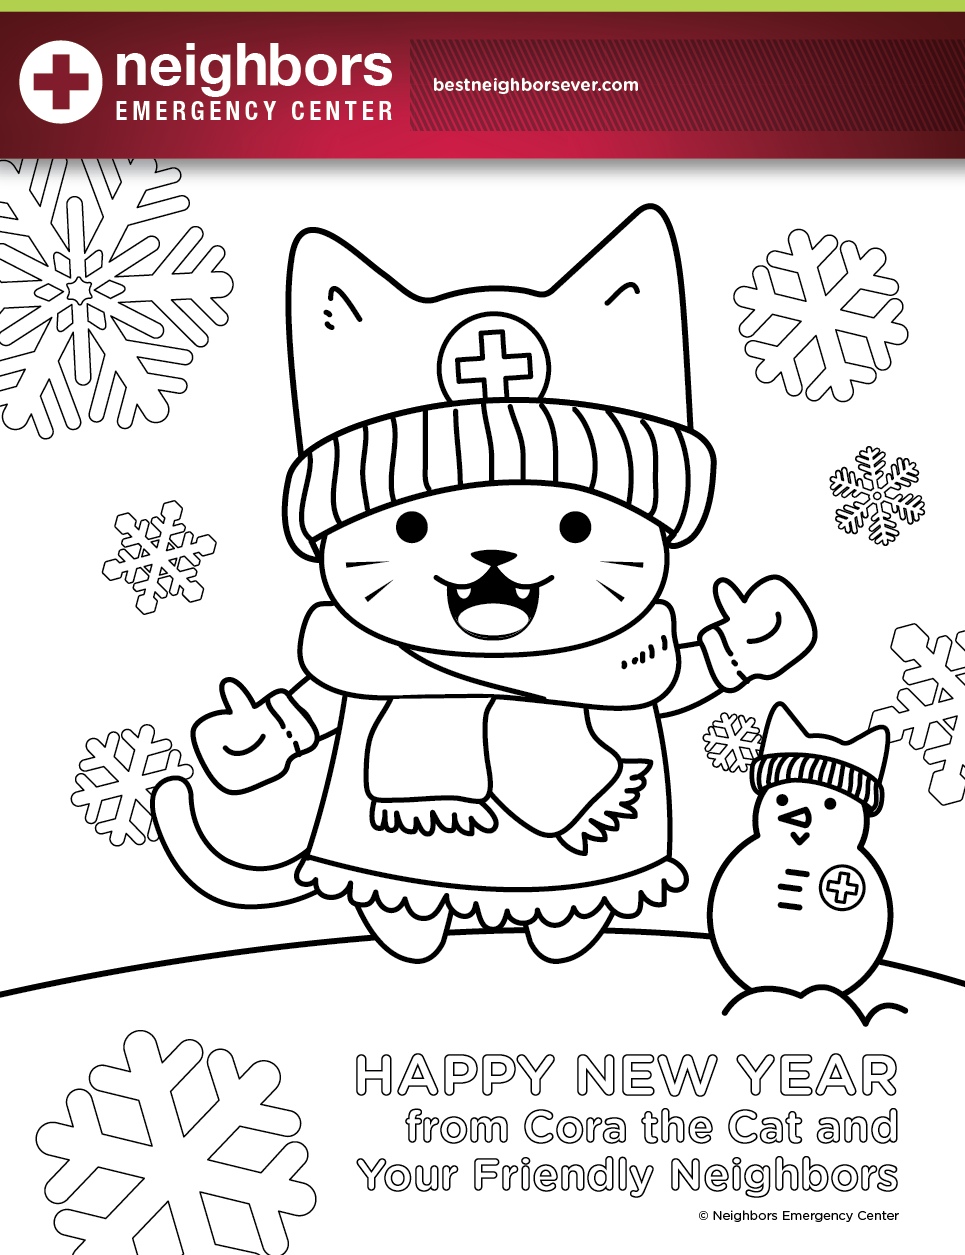 Best Neighbors Ever January Coloring Page! www.nec24.com | Healthy ...